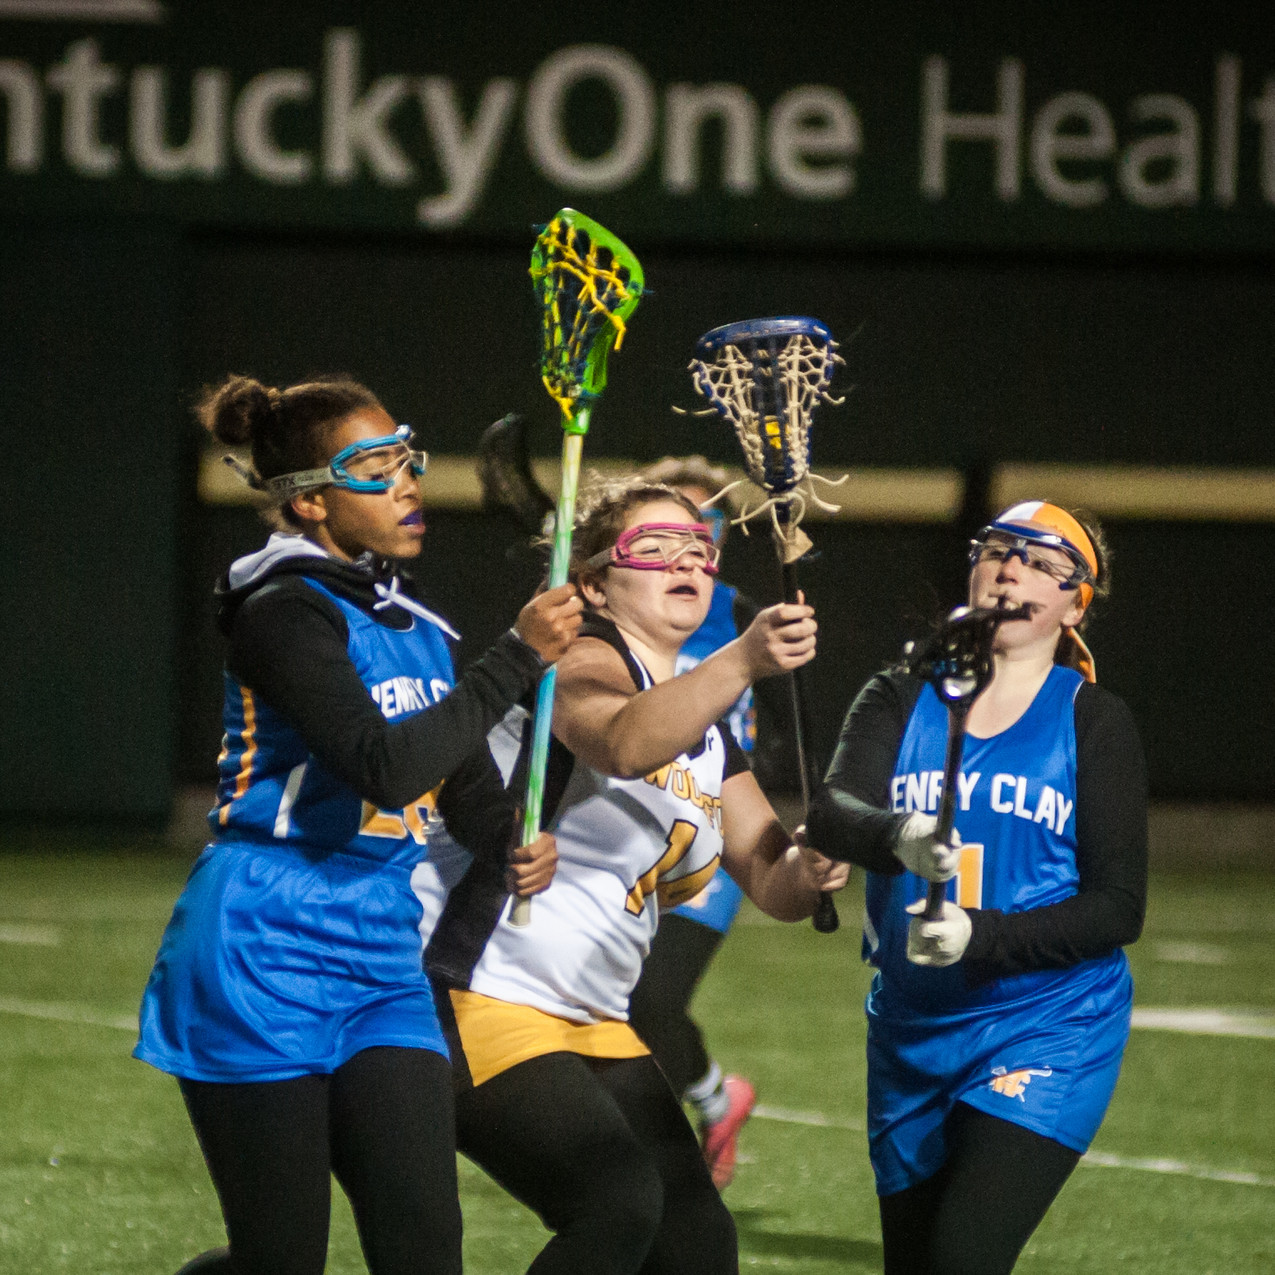 WCHS FRESHMAN HALEY SPENCER battles with a pair of Lady Blue Devil defenders in the Lady Jackets' win on March 7. (Photo by Bill Caine)